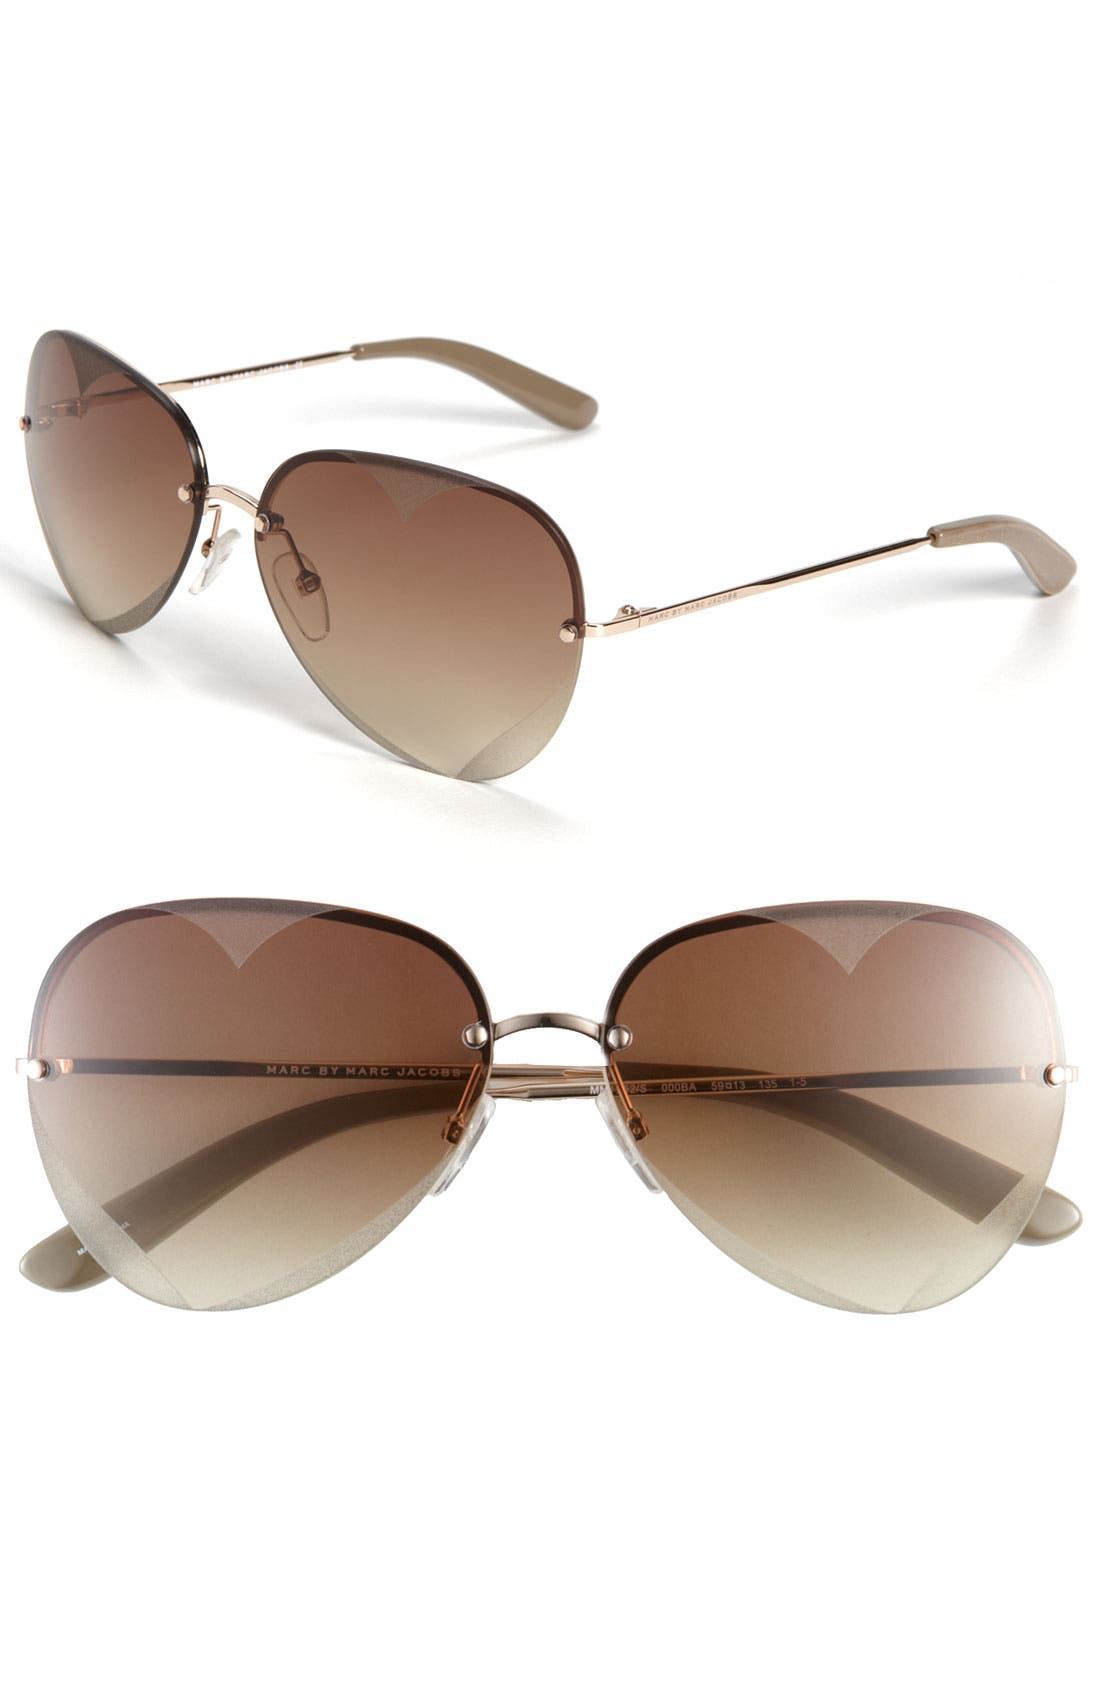 Alternate Image 1 Selected - MARC BY MARC JACOBS Rimless Sunglasses